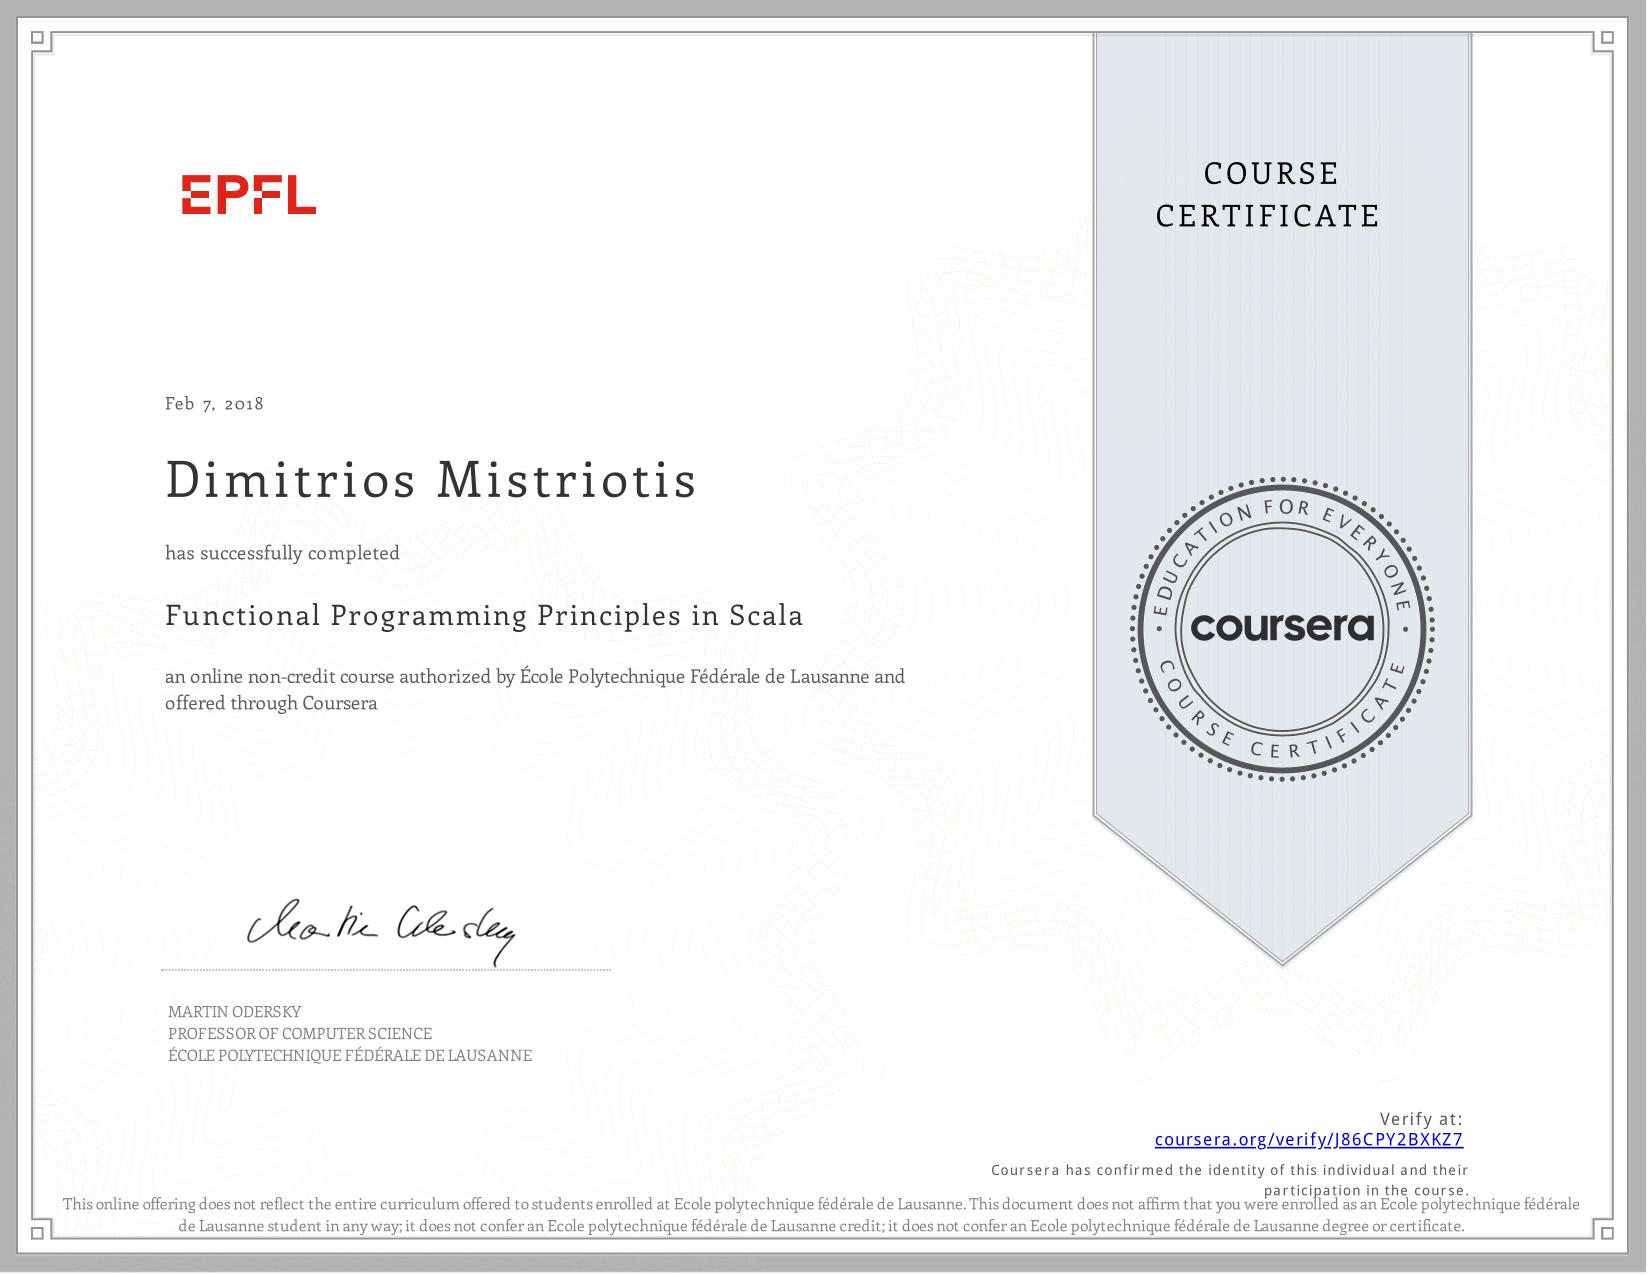 View certificate for Dimitrios Mistriotis, Functional Programming Principles in Scala, an online non-credit course authorized by  & École Polytechnique Fédérale de Lausanne and offered through Coursera